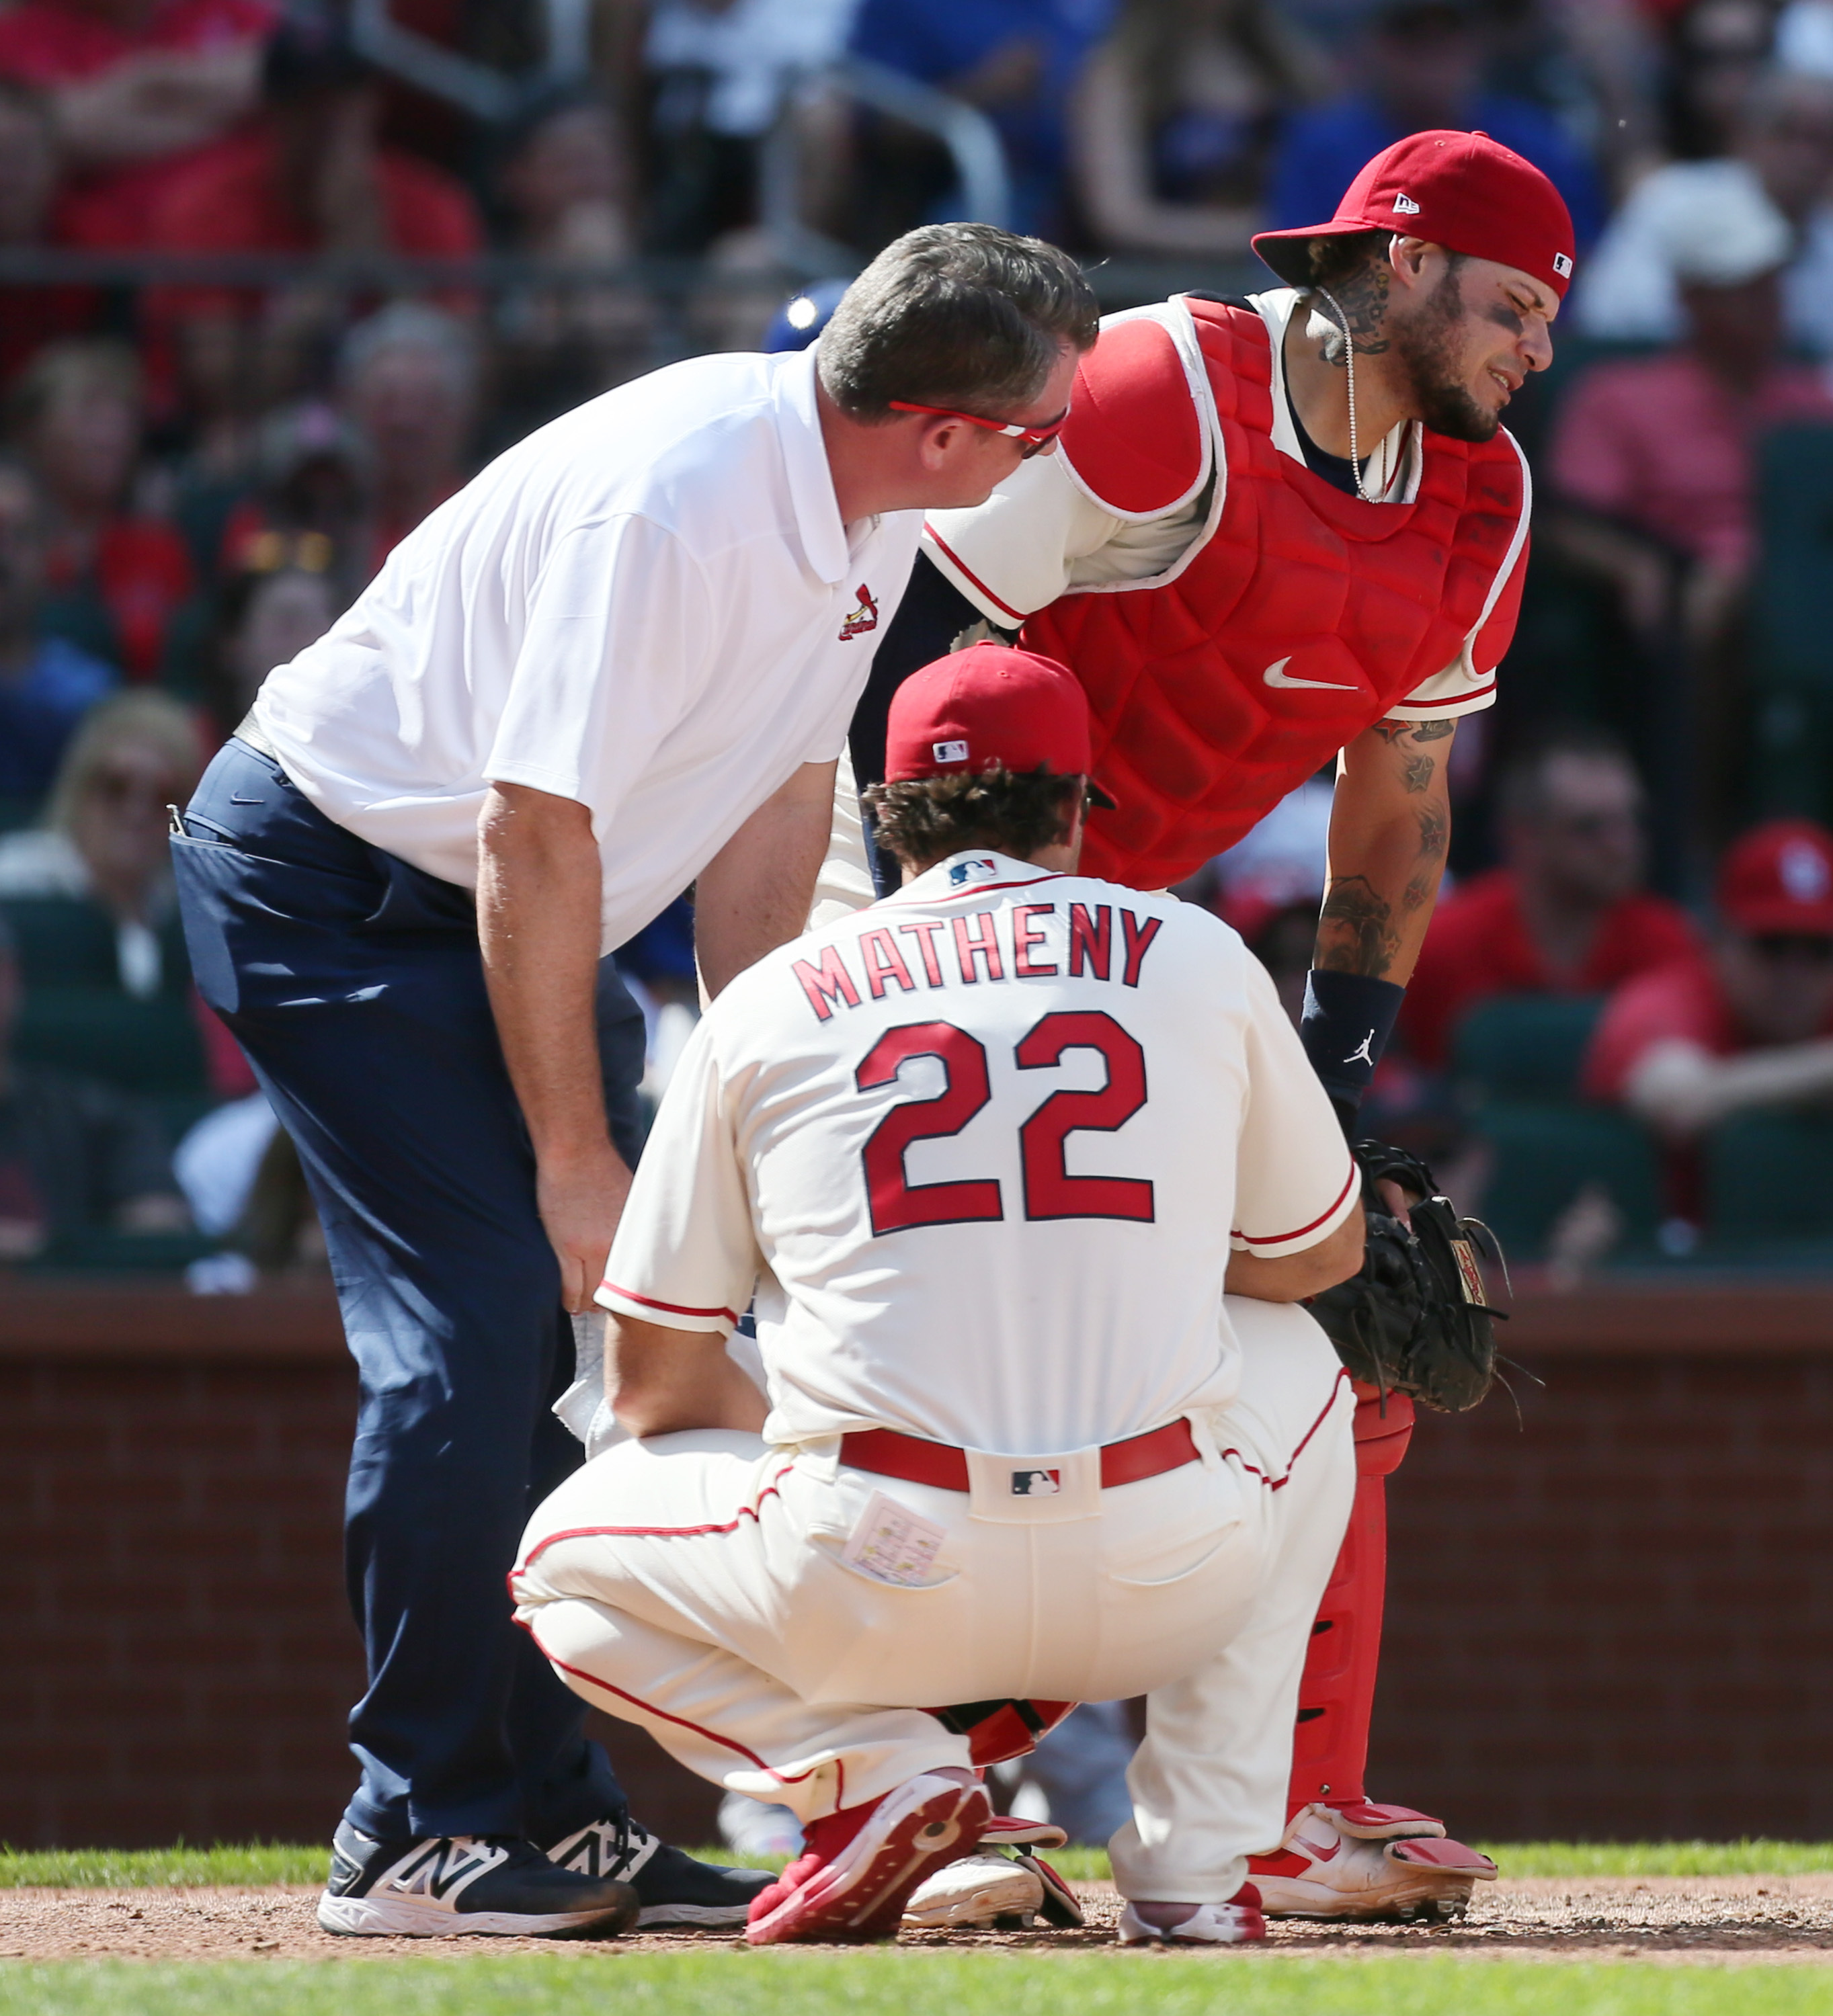 Molina has Surgery Following Foul Tip to the Groin